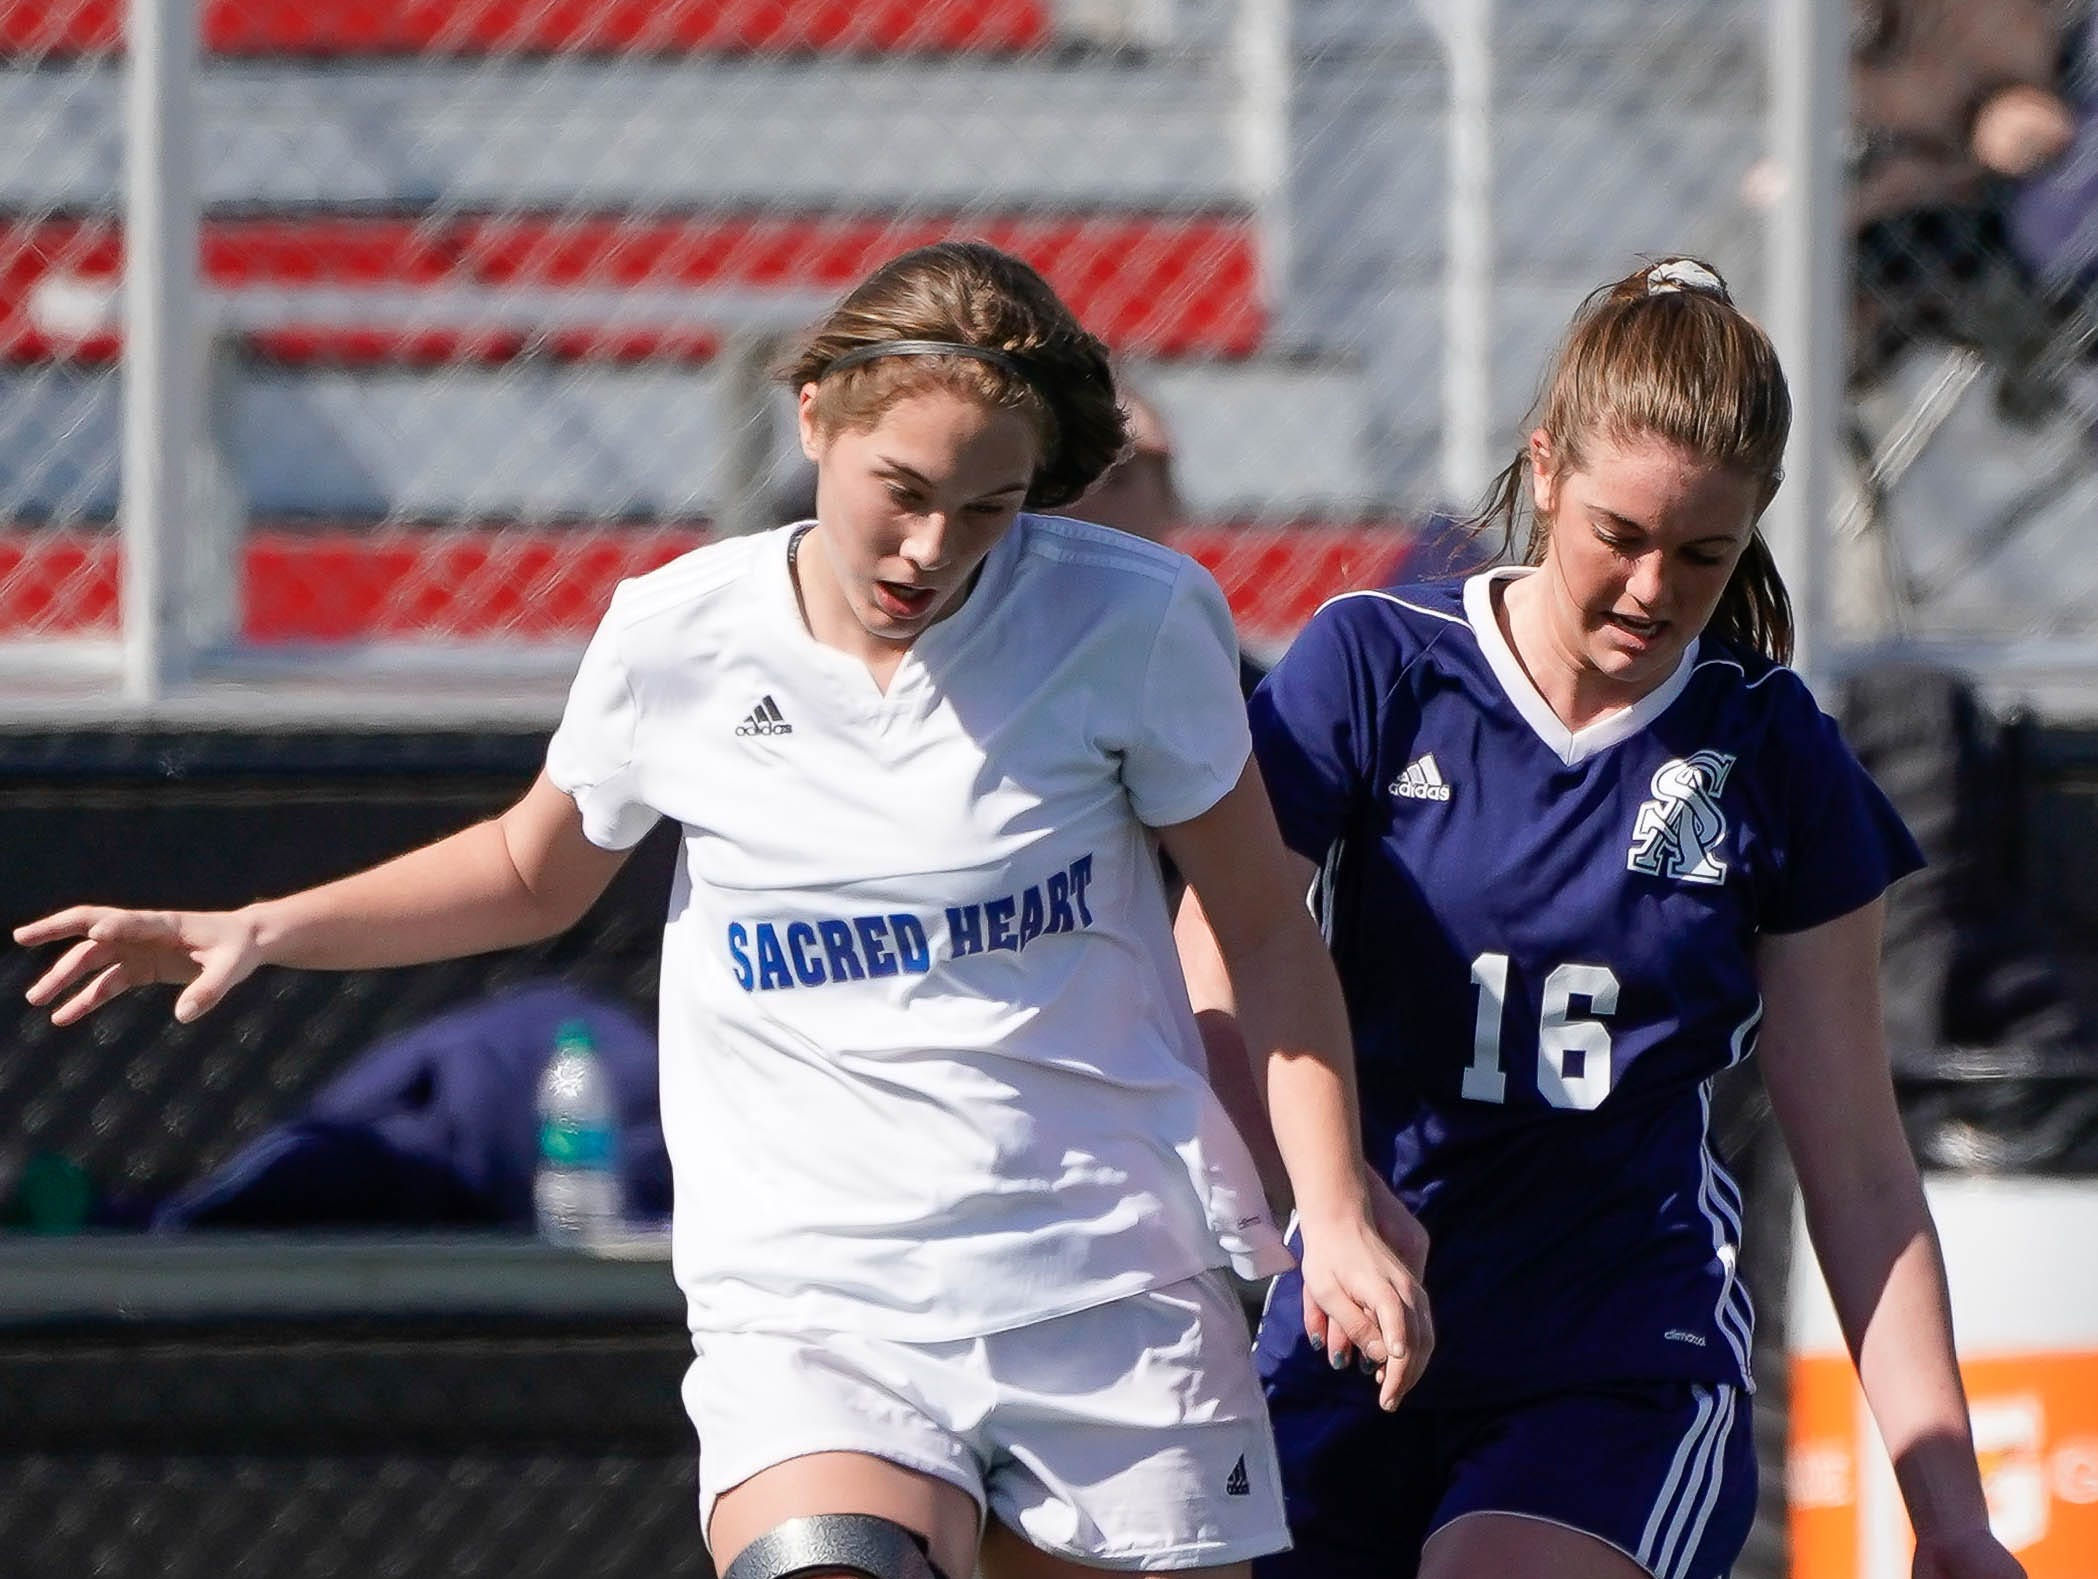 St. Andrew's Mary Regan Barnett (16) Sacred Heart's Blair Viator (20) battle for a ball during the MHSAA 1A,2A,3A  GIrls Soccer Championships held at Brandon High School in Brandon, MS, Saturday February 9, 2019.(Bob Smith-For The Clarion Ledger)